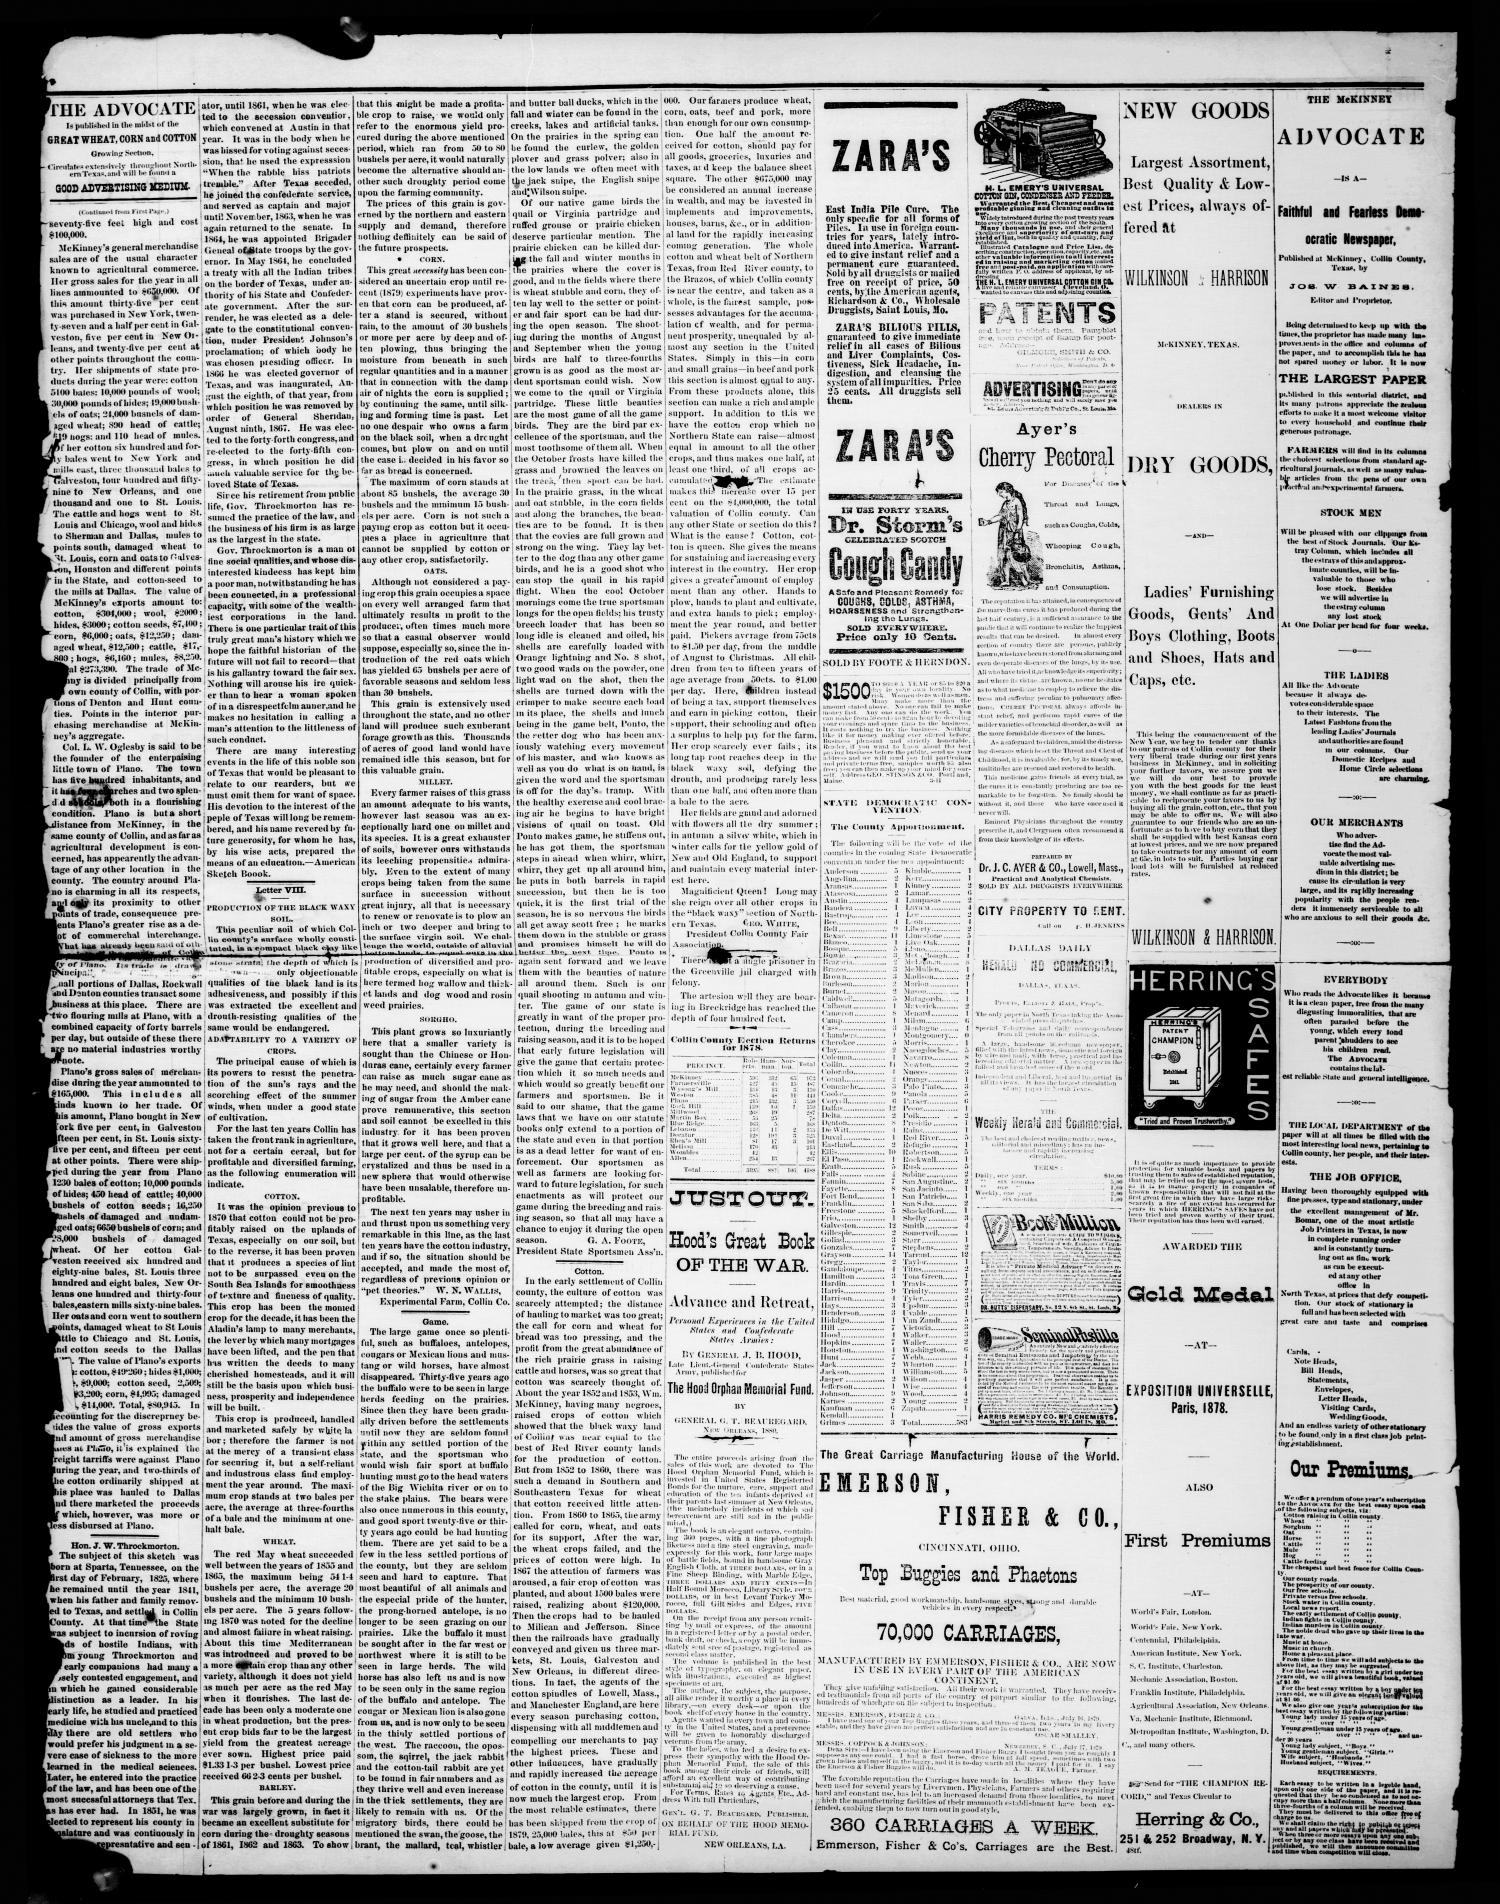 The McKinney Advocate. (McKinney, Tex.), Vol. 4, No. 1, Ed. 1 Saturday, April 3, 1880                                                                                                      [Sequence #]: 4 of 4